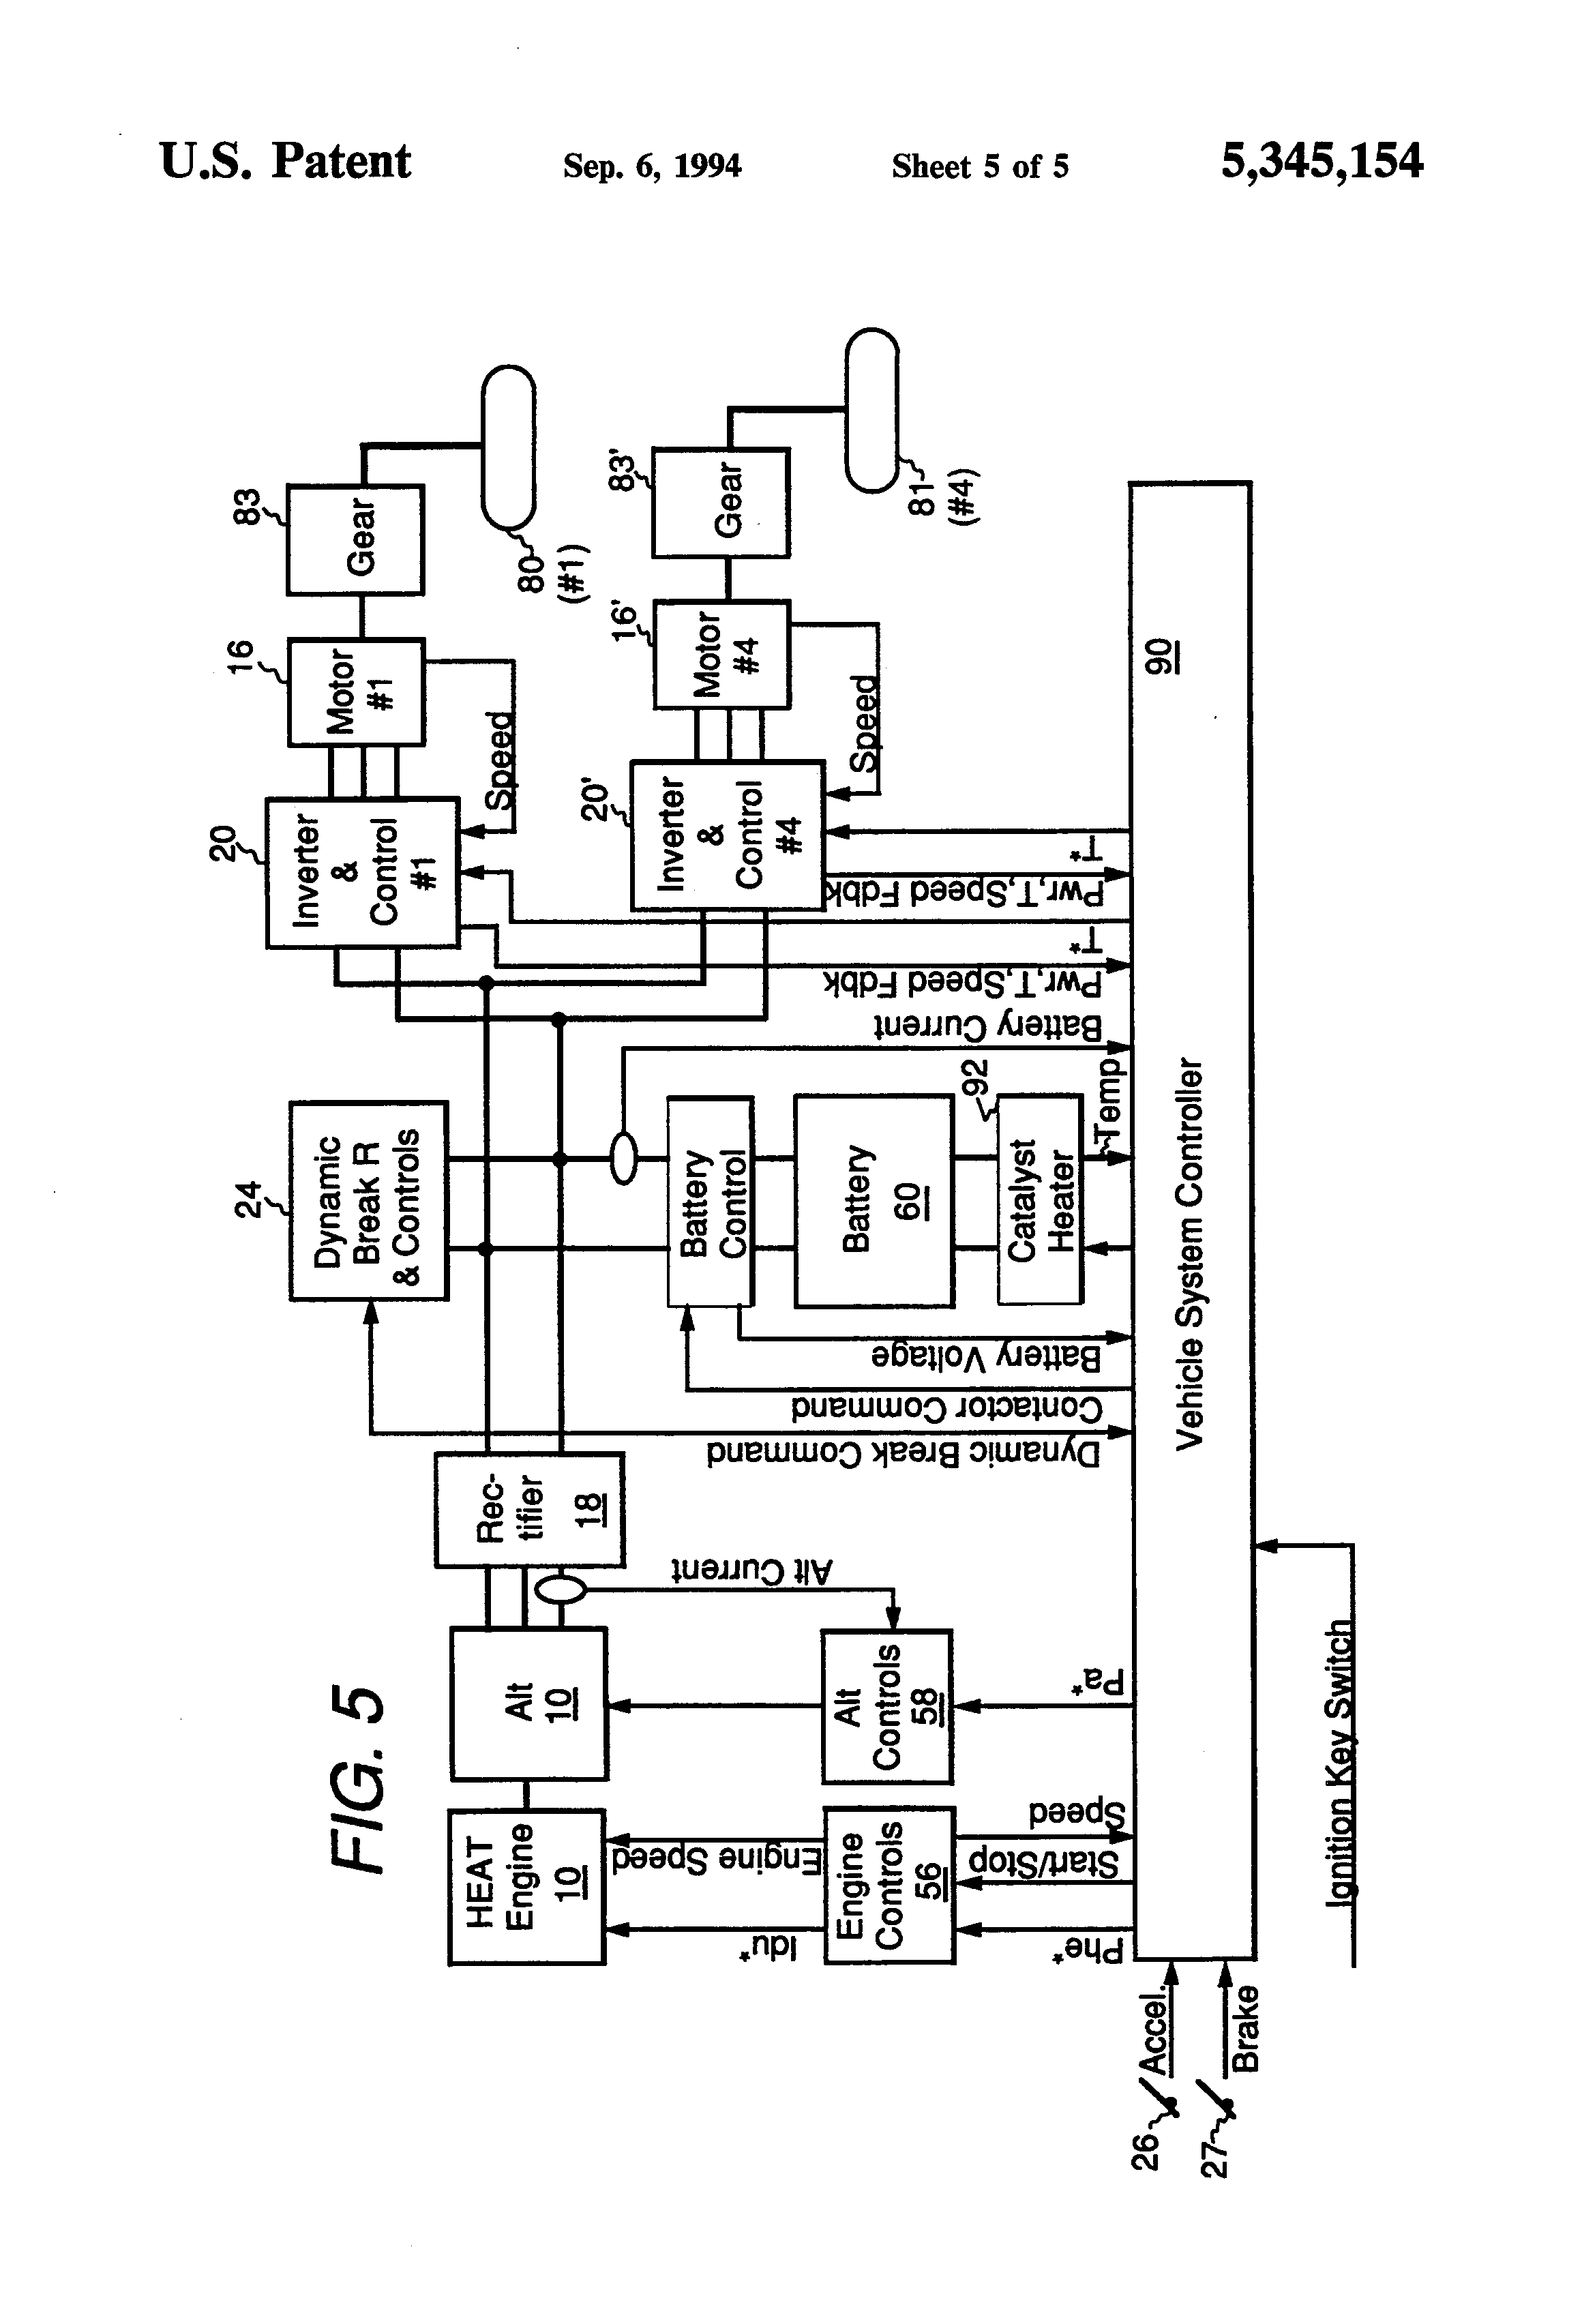 Closed Loop Control For Ac Motor Using Five Level Inverter Auto Circuit Diagram Stepper Driver Uc3717a Block Of Induction Drive 28 Images Patent Us5345154